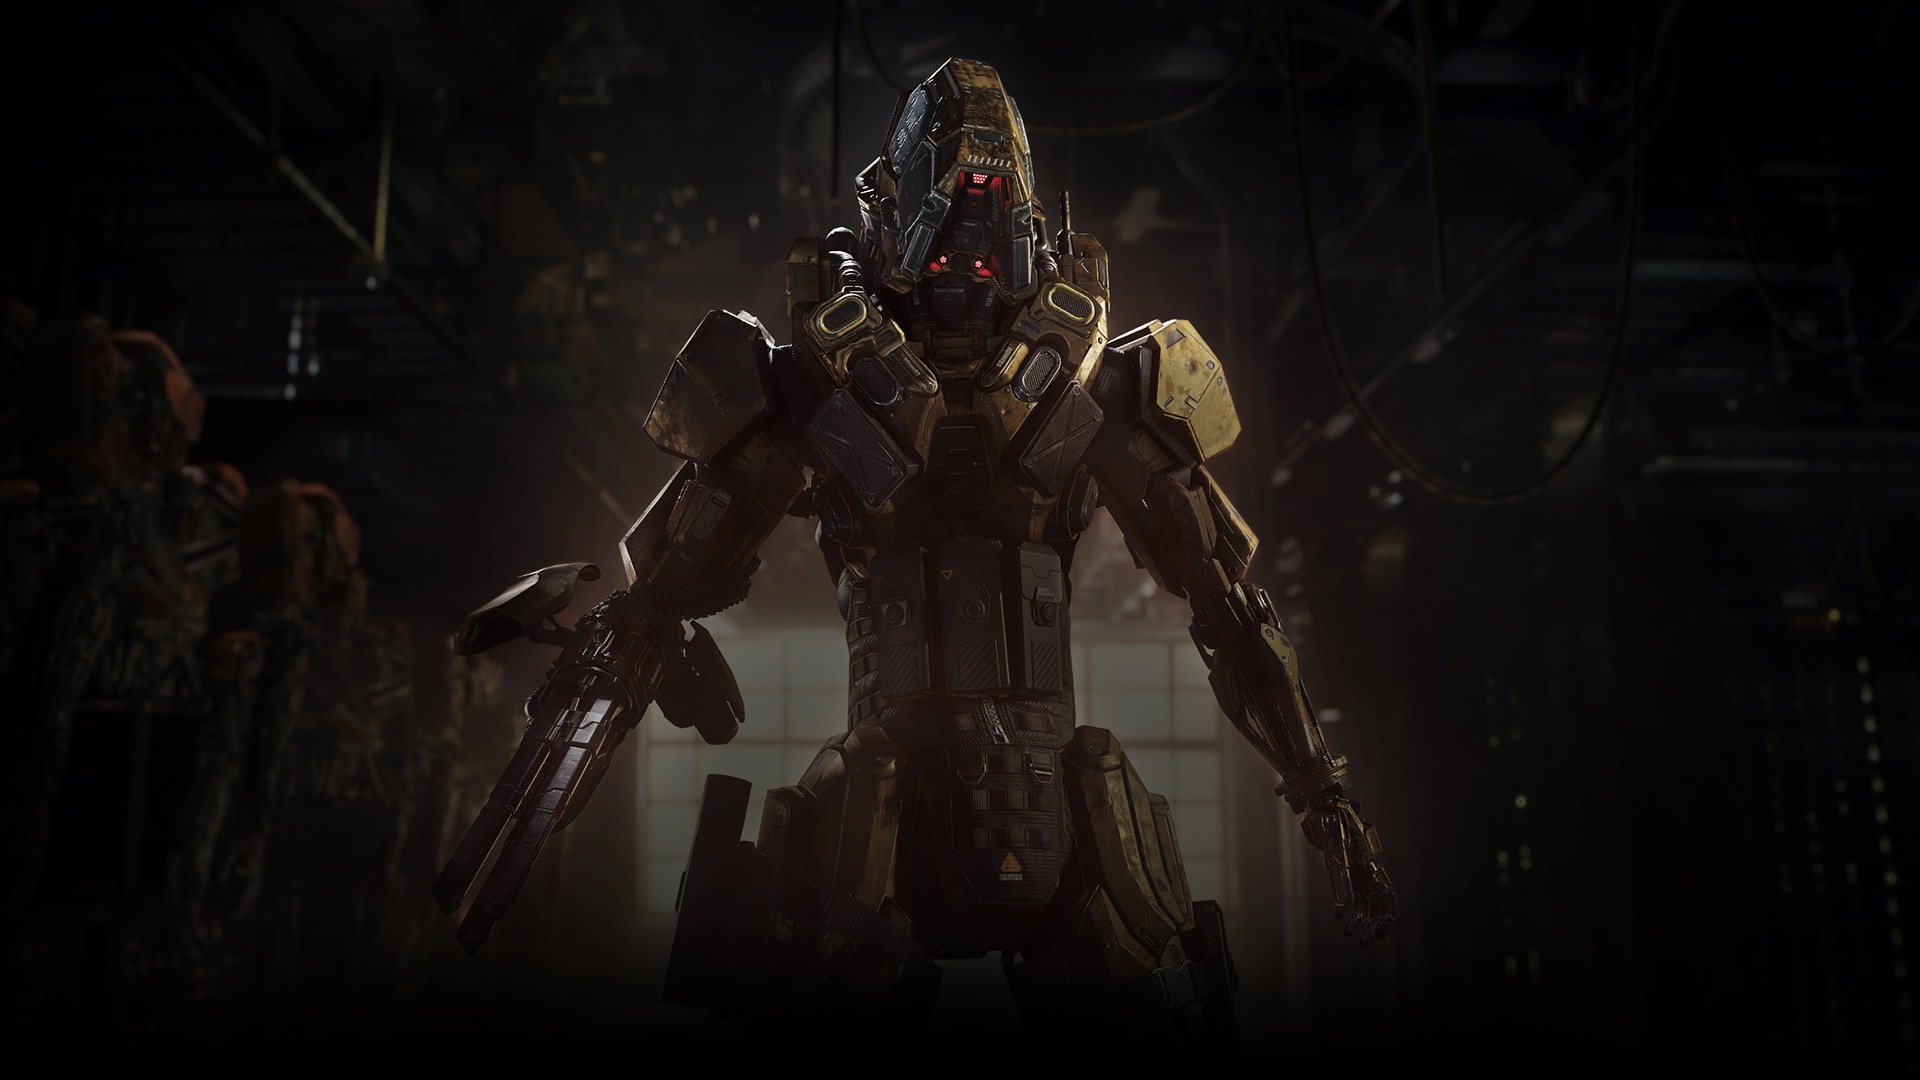 New hi-res images for the (8) known Black Ops 3 Specialist found